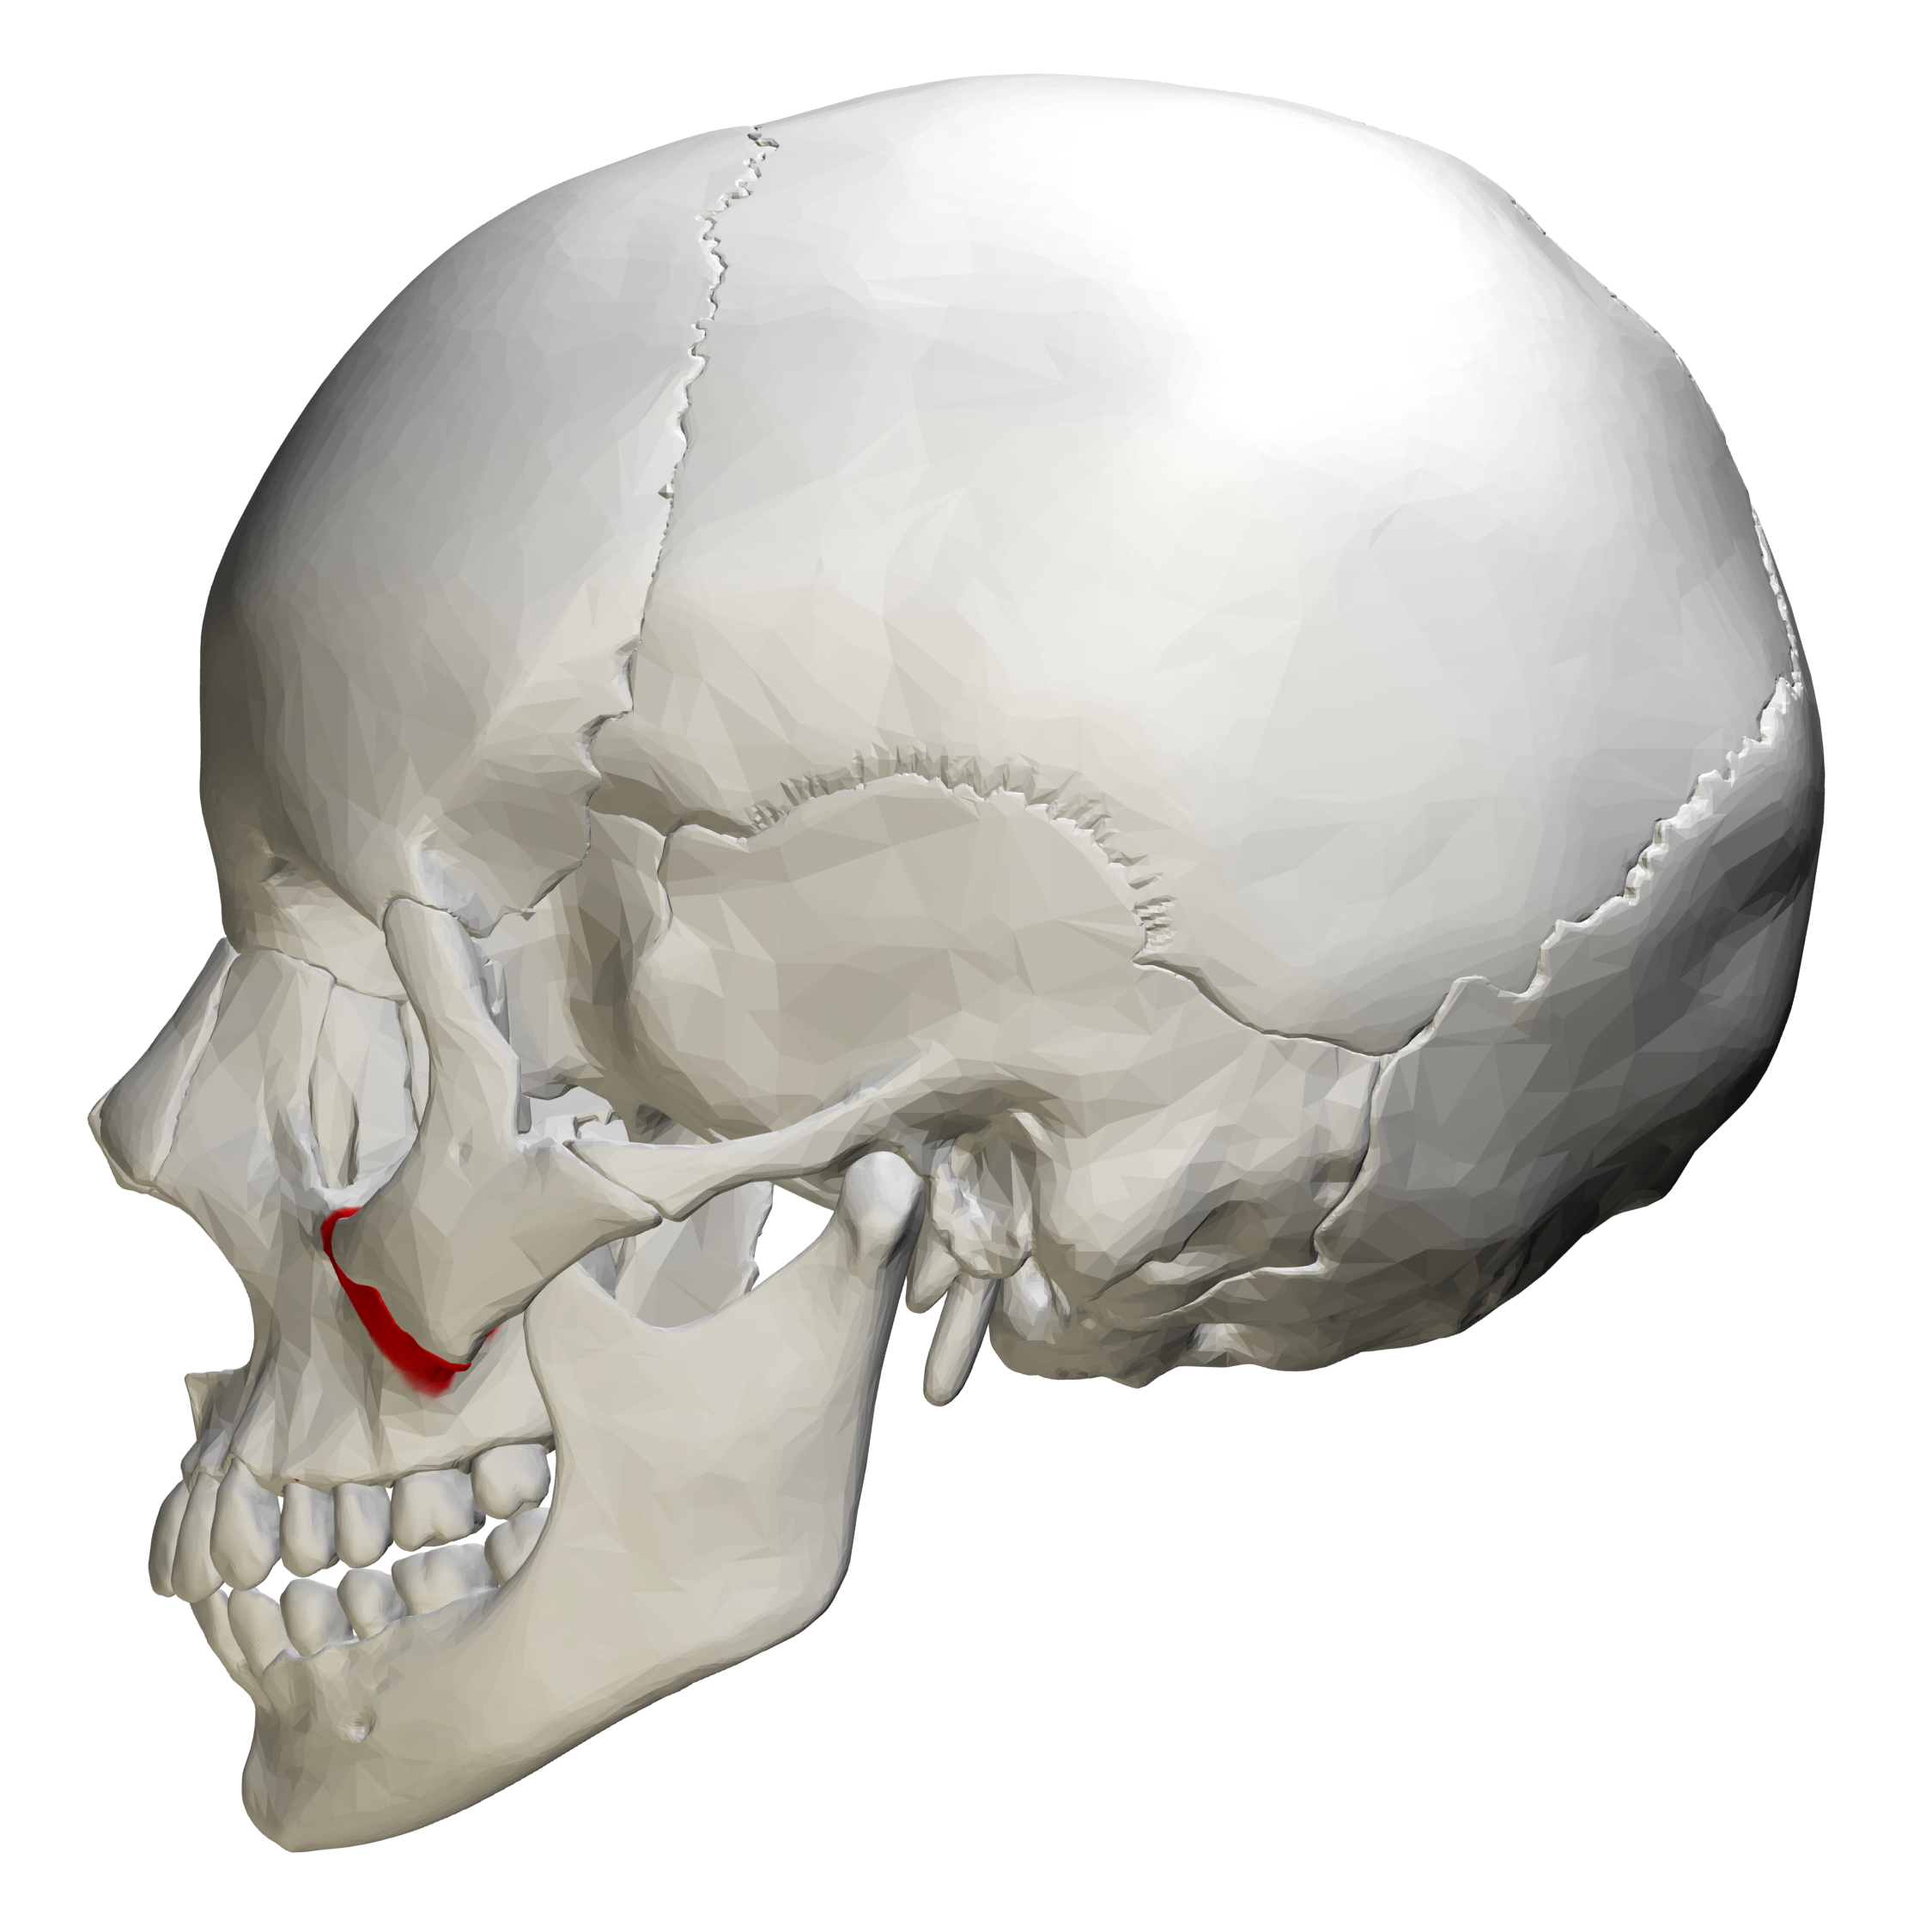 Showing Gallery For Zygomatic Process Of MaxillaZygomatic Process Of The Maxilla Radiograph